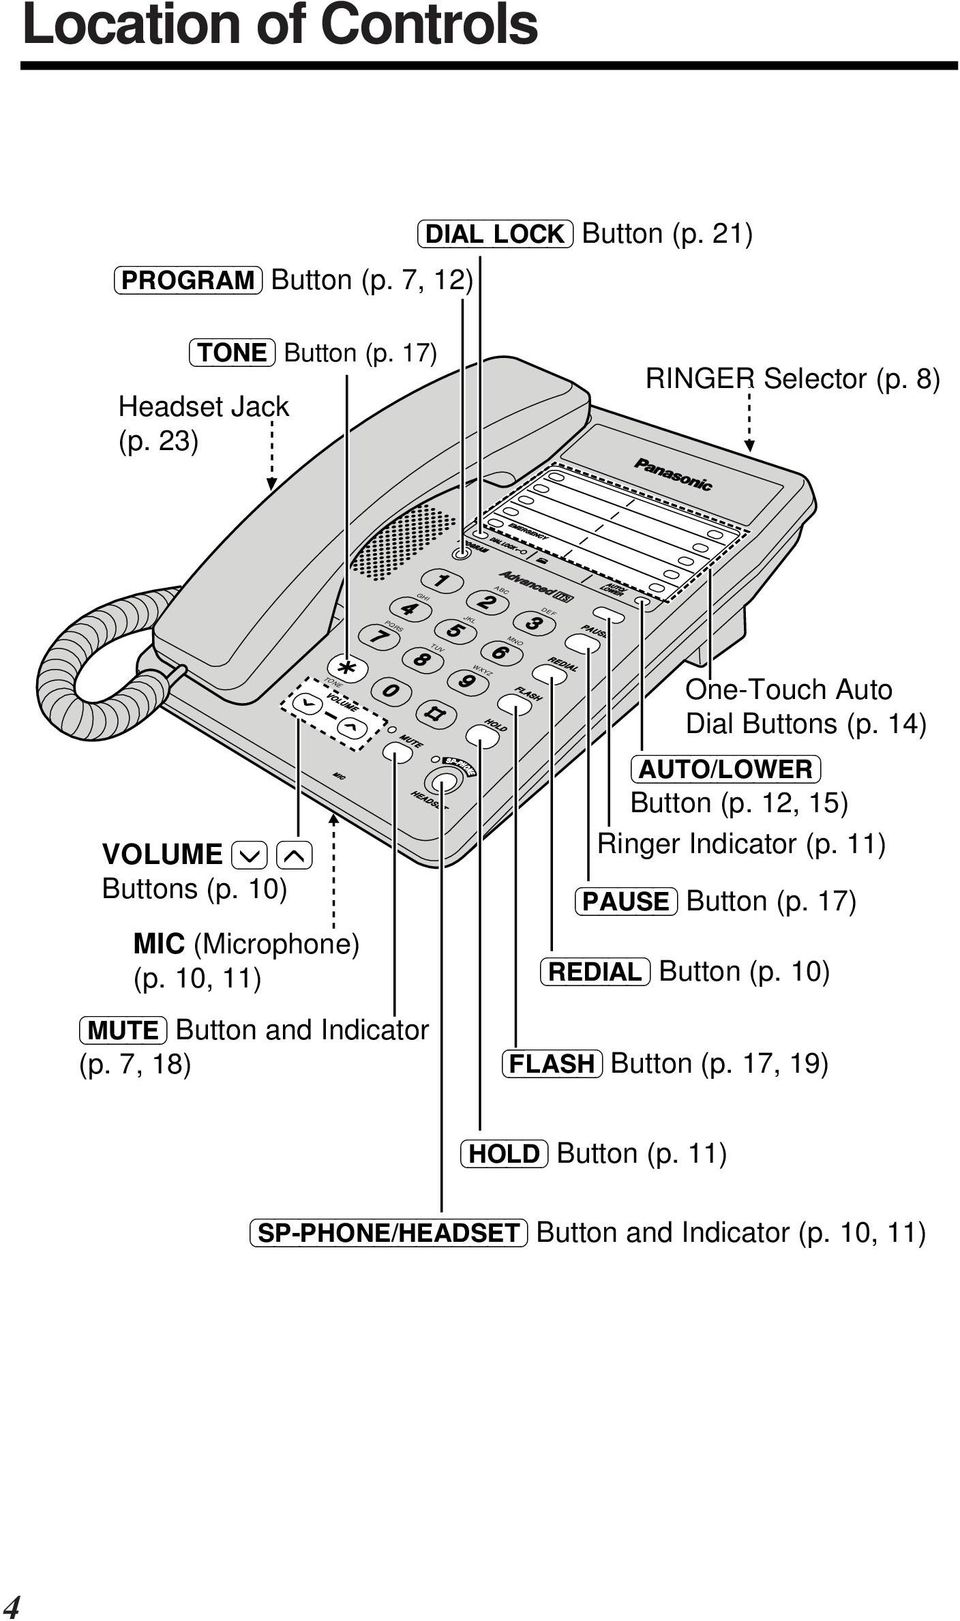 0, ) VOLUME MUTE (MUTE) Button and Indicator (p. 7, 8) TONE MIC HEADSET SP-PHONE HOLD FLASH REDIAL One-Touch Auto Dial Buttons (p.